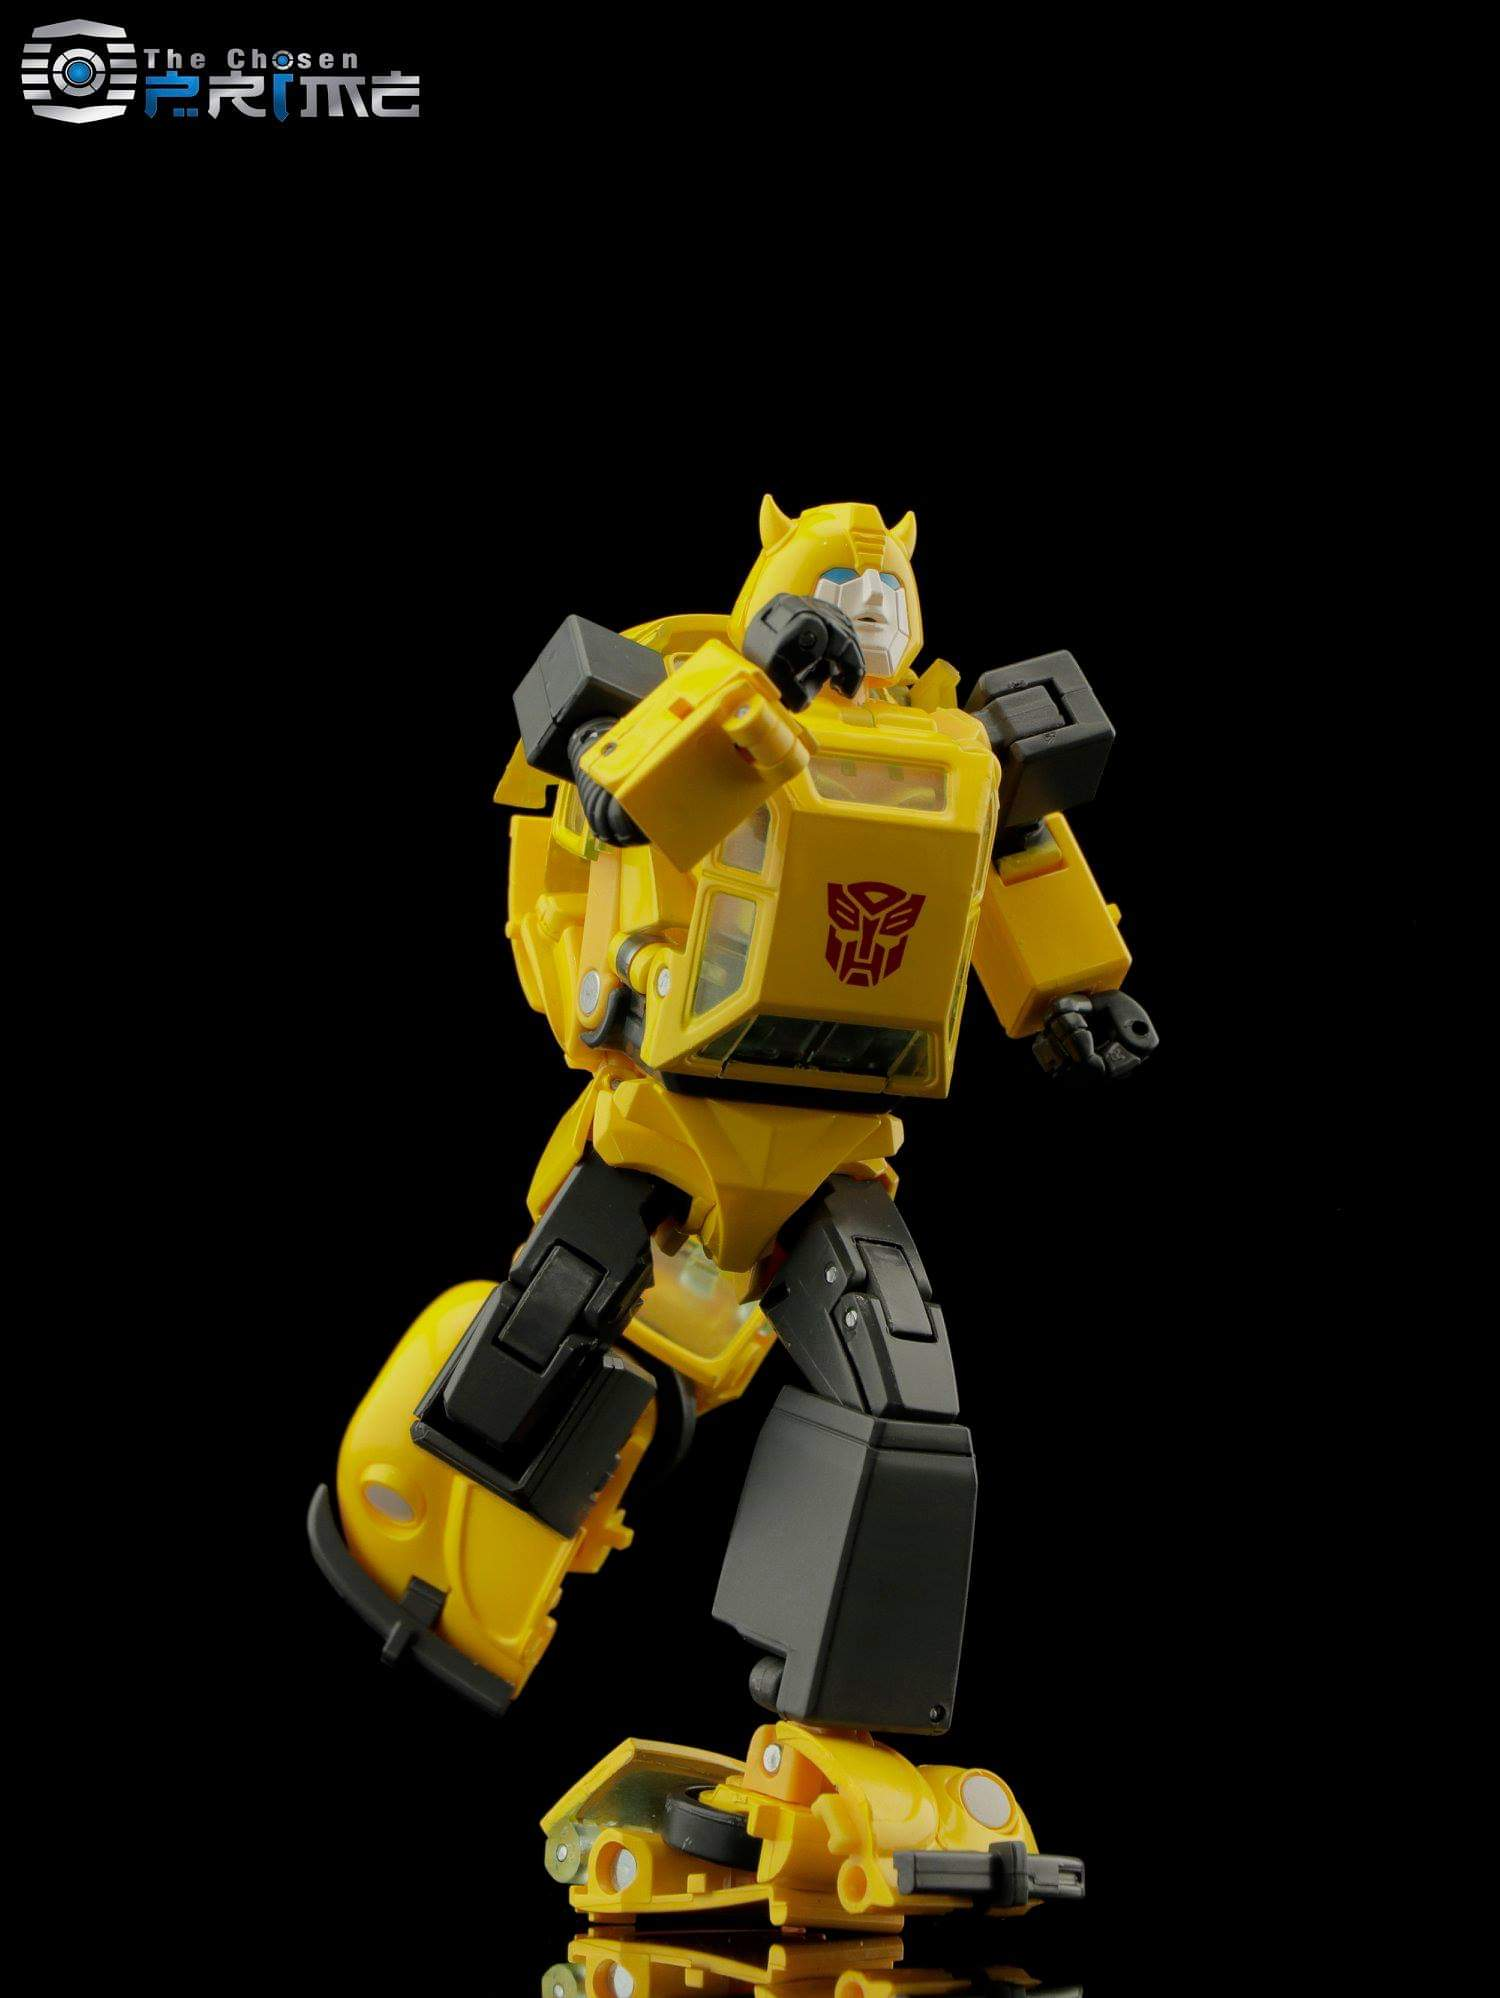 [Masterpiece] MP-45 Bumblebee/Bourdon v2.0 - Page 2 IpyrmTIx_o